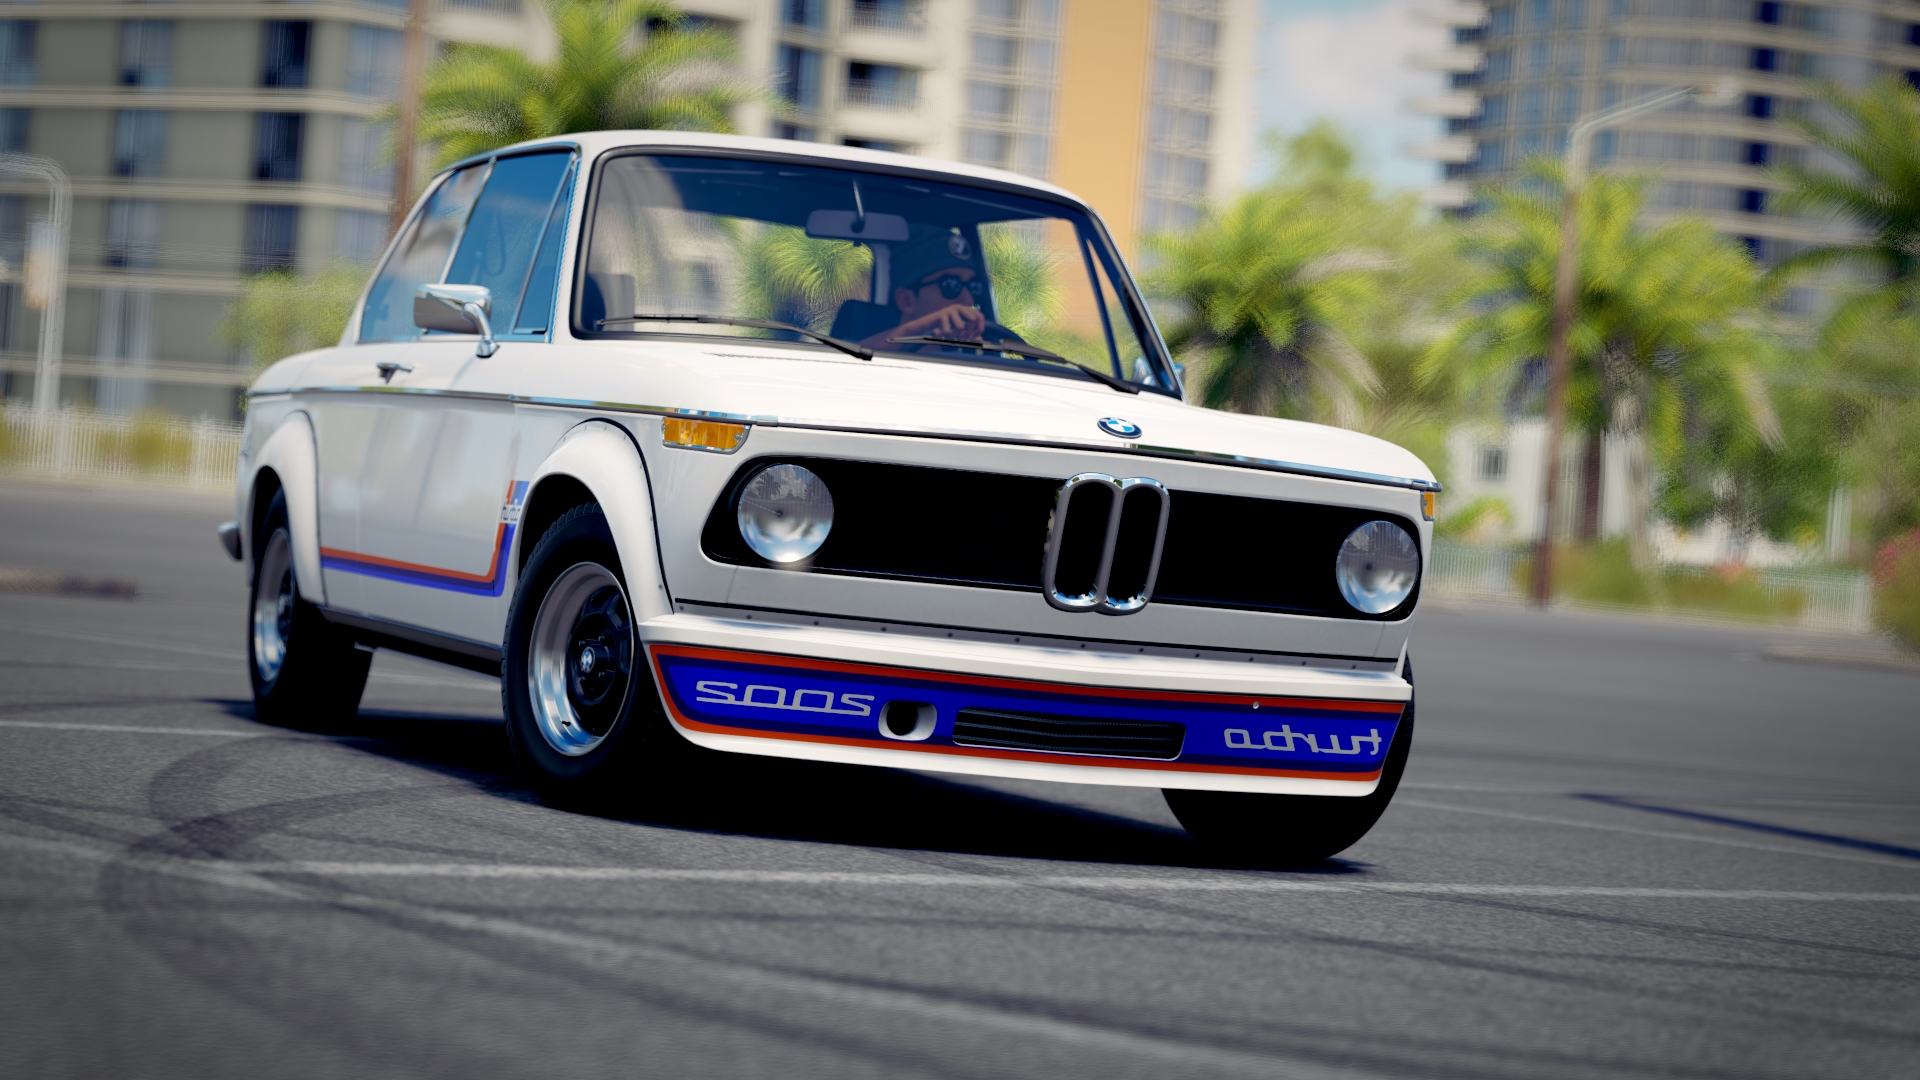 bmw 2002 turbo forza motorsport wiki fandom powered by wikia. Black Bedroom Furniture Sets. Home Design Ideas